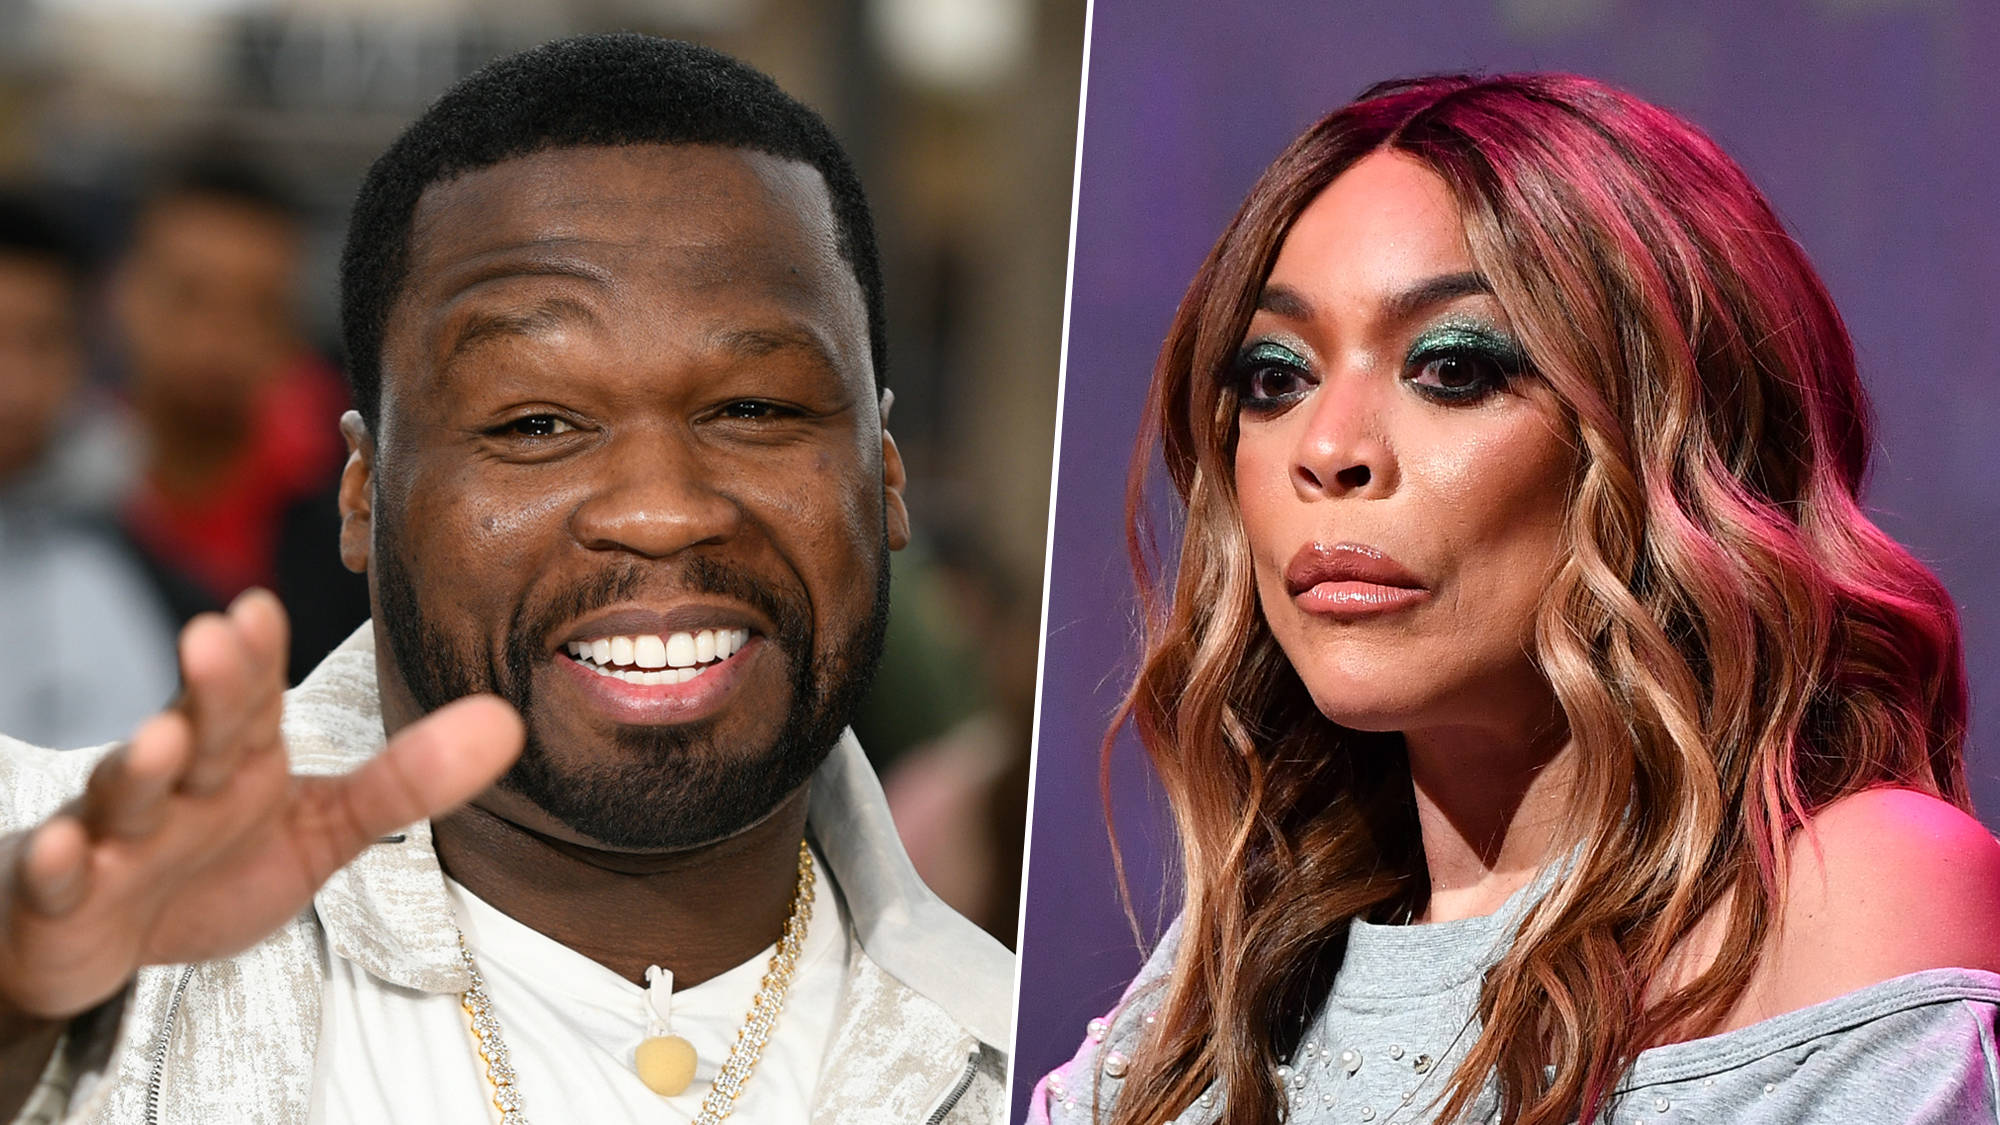 Image result for images of 50 Cent vs Wendy Williams